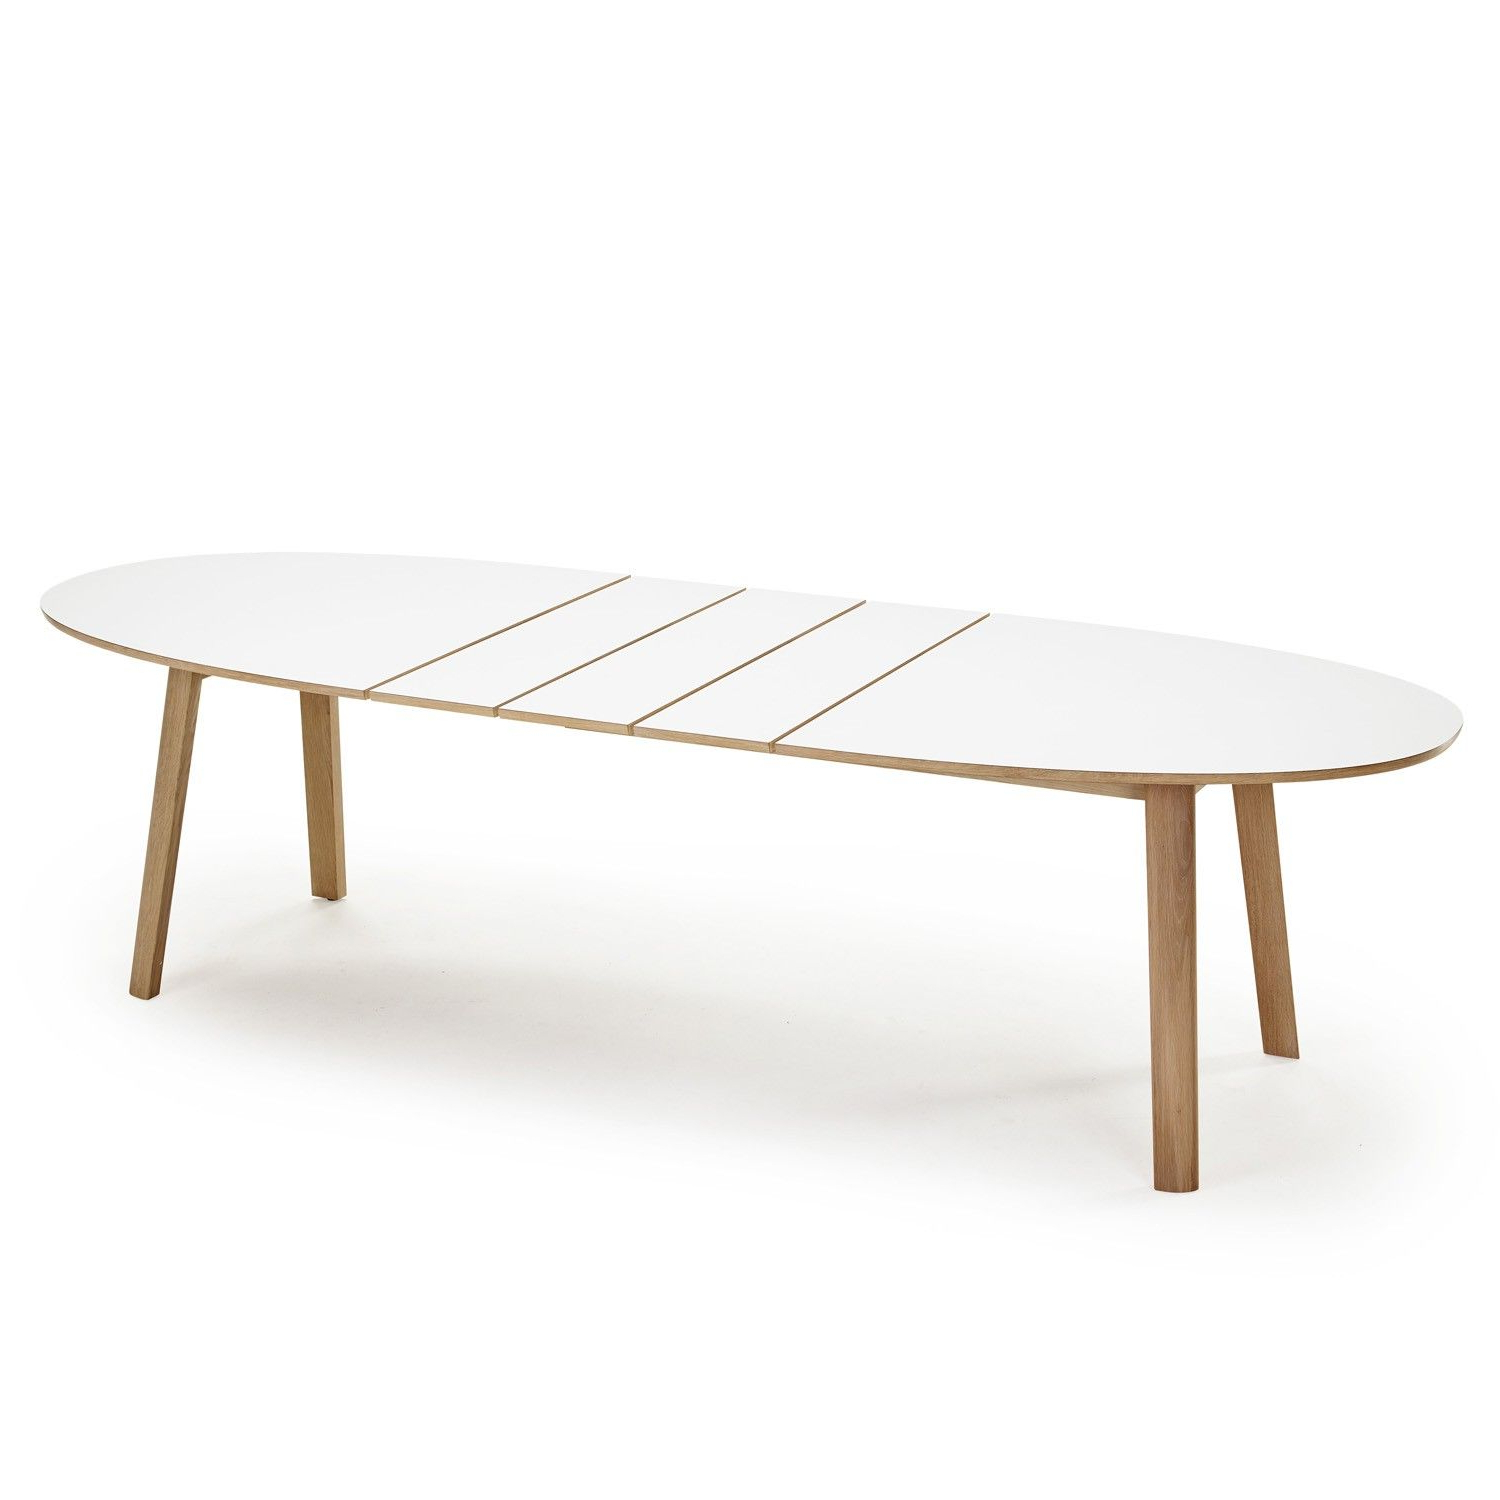 Modern Dining Table With Favorite Neo Round Dining Tables (View 11 of 25)